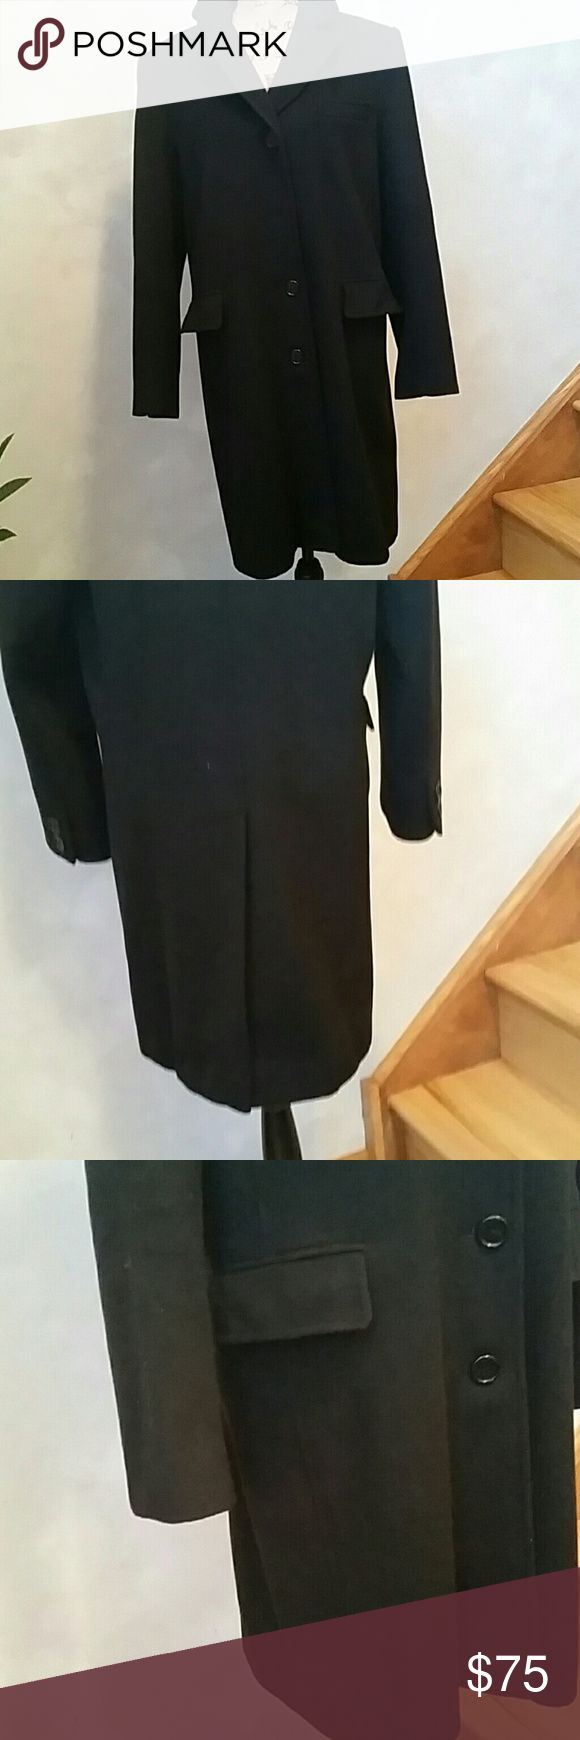 Gallery, Black Wool Coat. Size 10 Fully lined, small tear on inside lining near slit.  Not visible from outside.  2 side pockets and 1 hankerchief pocket.  Four button closure, one fell off and just needs to be sewn back on. Has nice back pleat opening.  75% Wool, 25% Nylon. Gallery Jackets & Coats Pea Coats